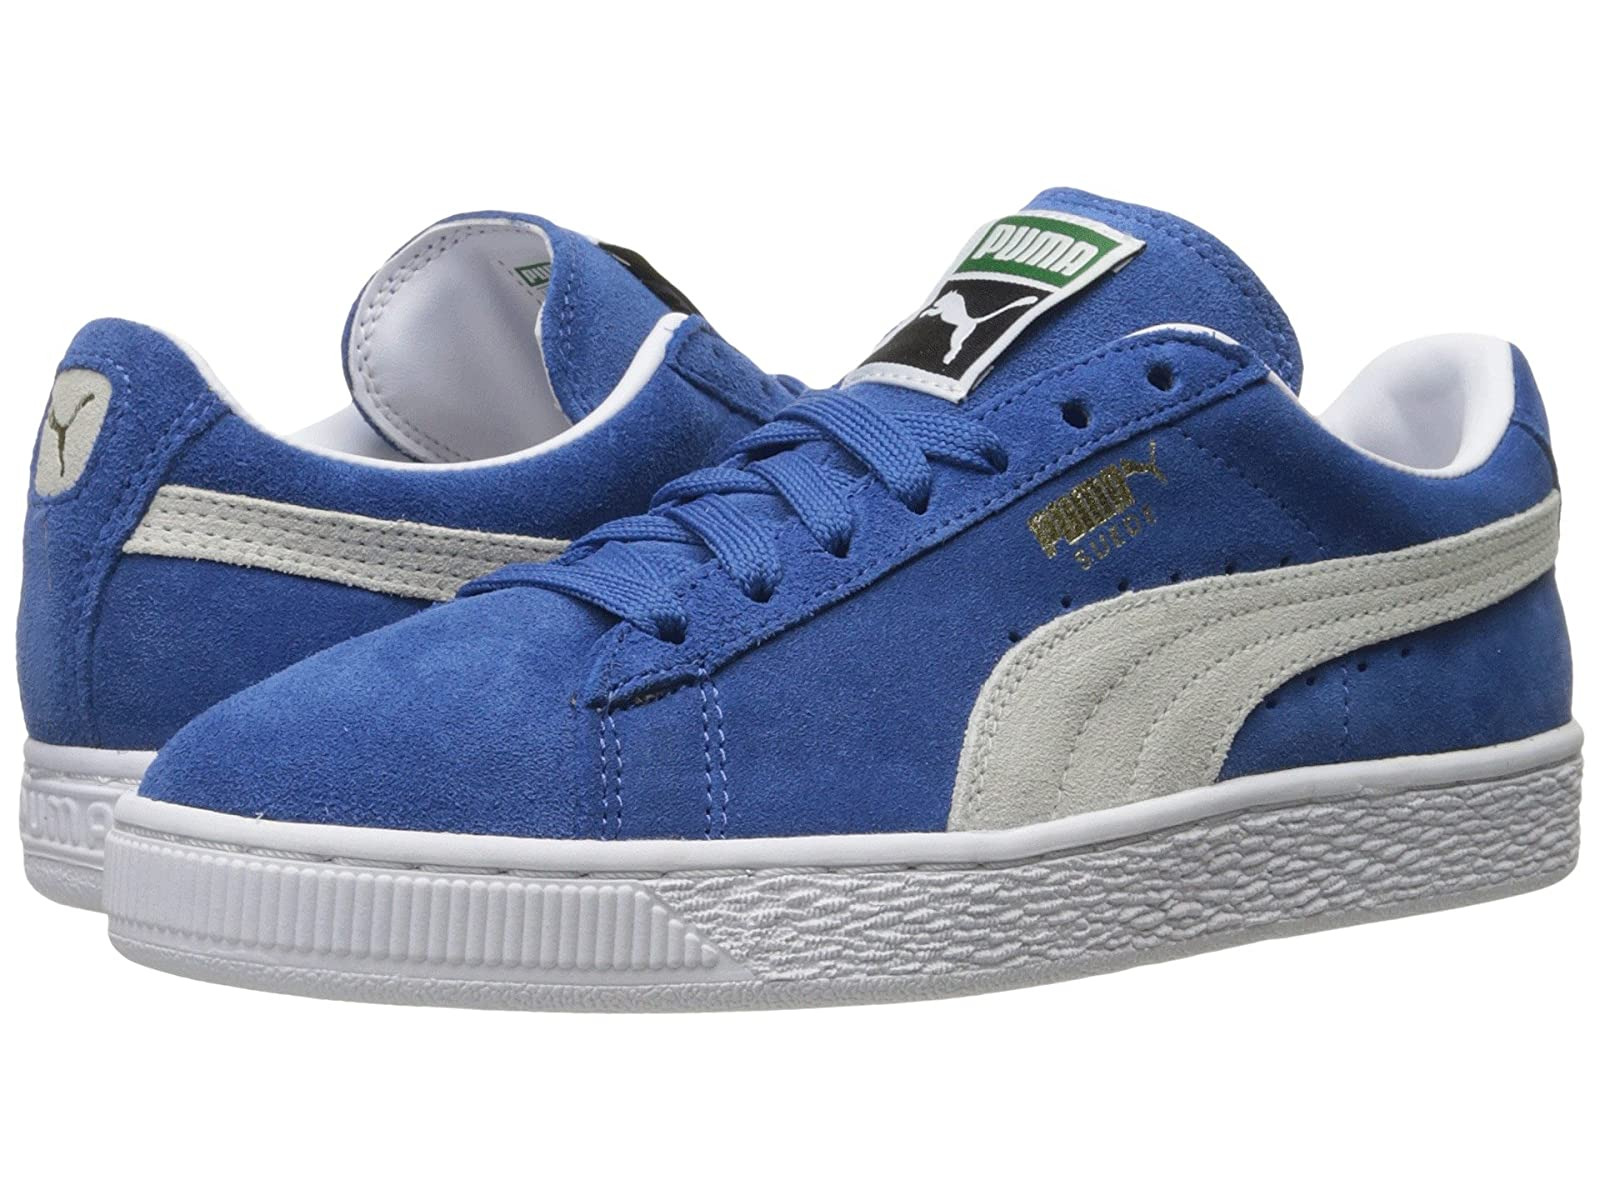 PUMA Suede ClassicAtmospheric grades have affordable shoes